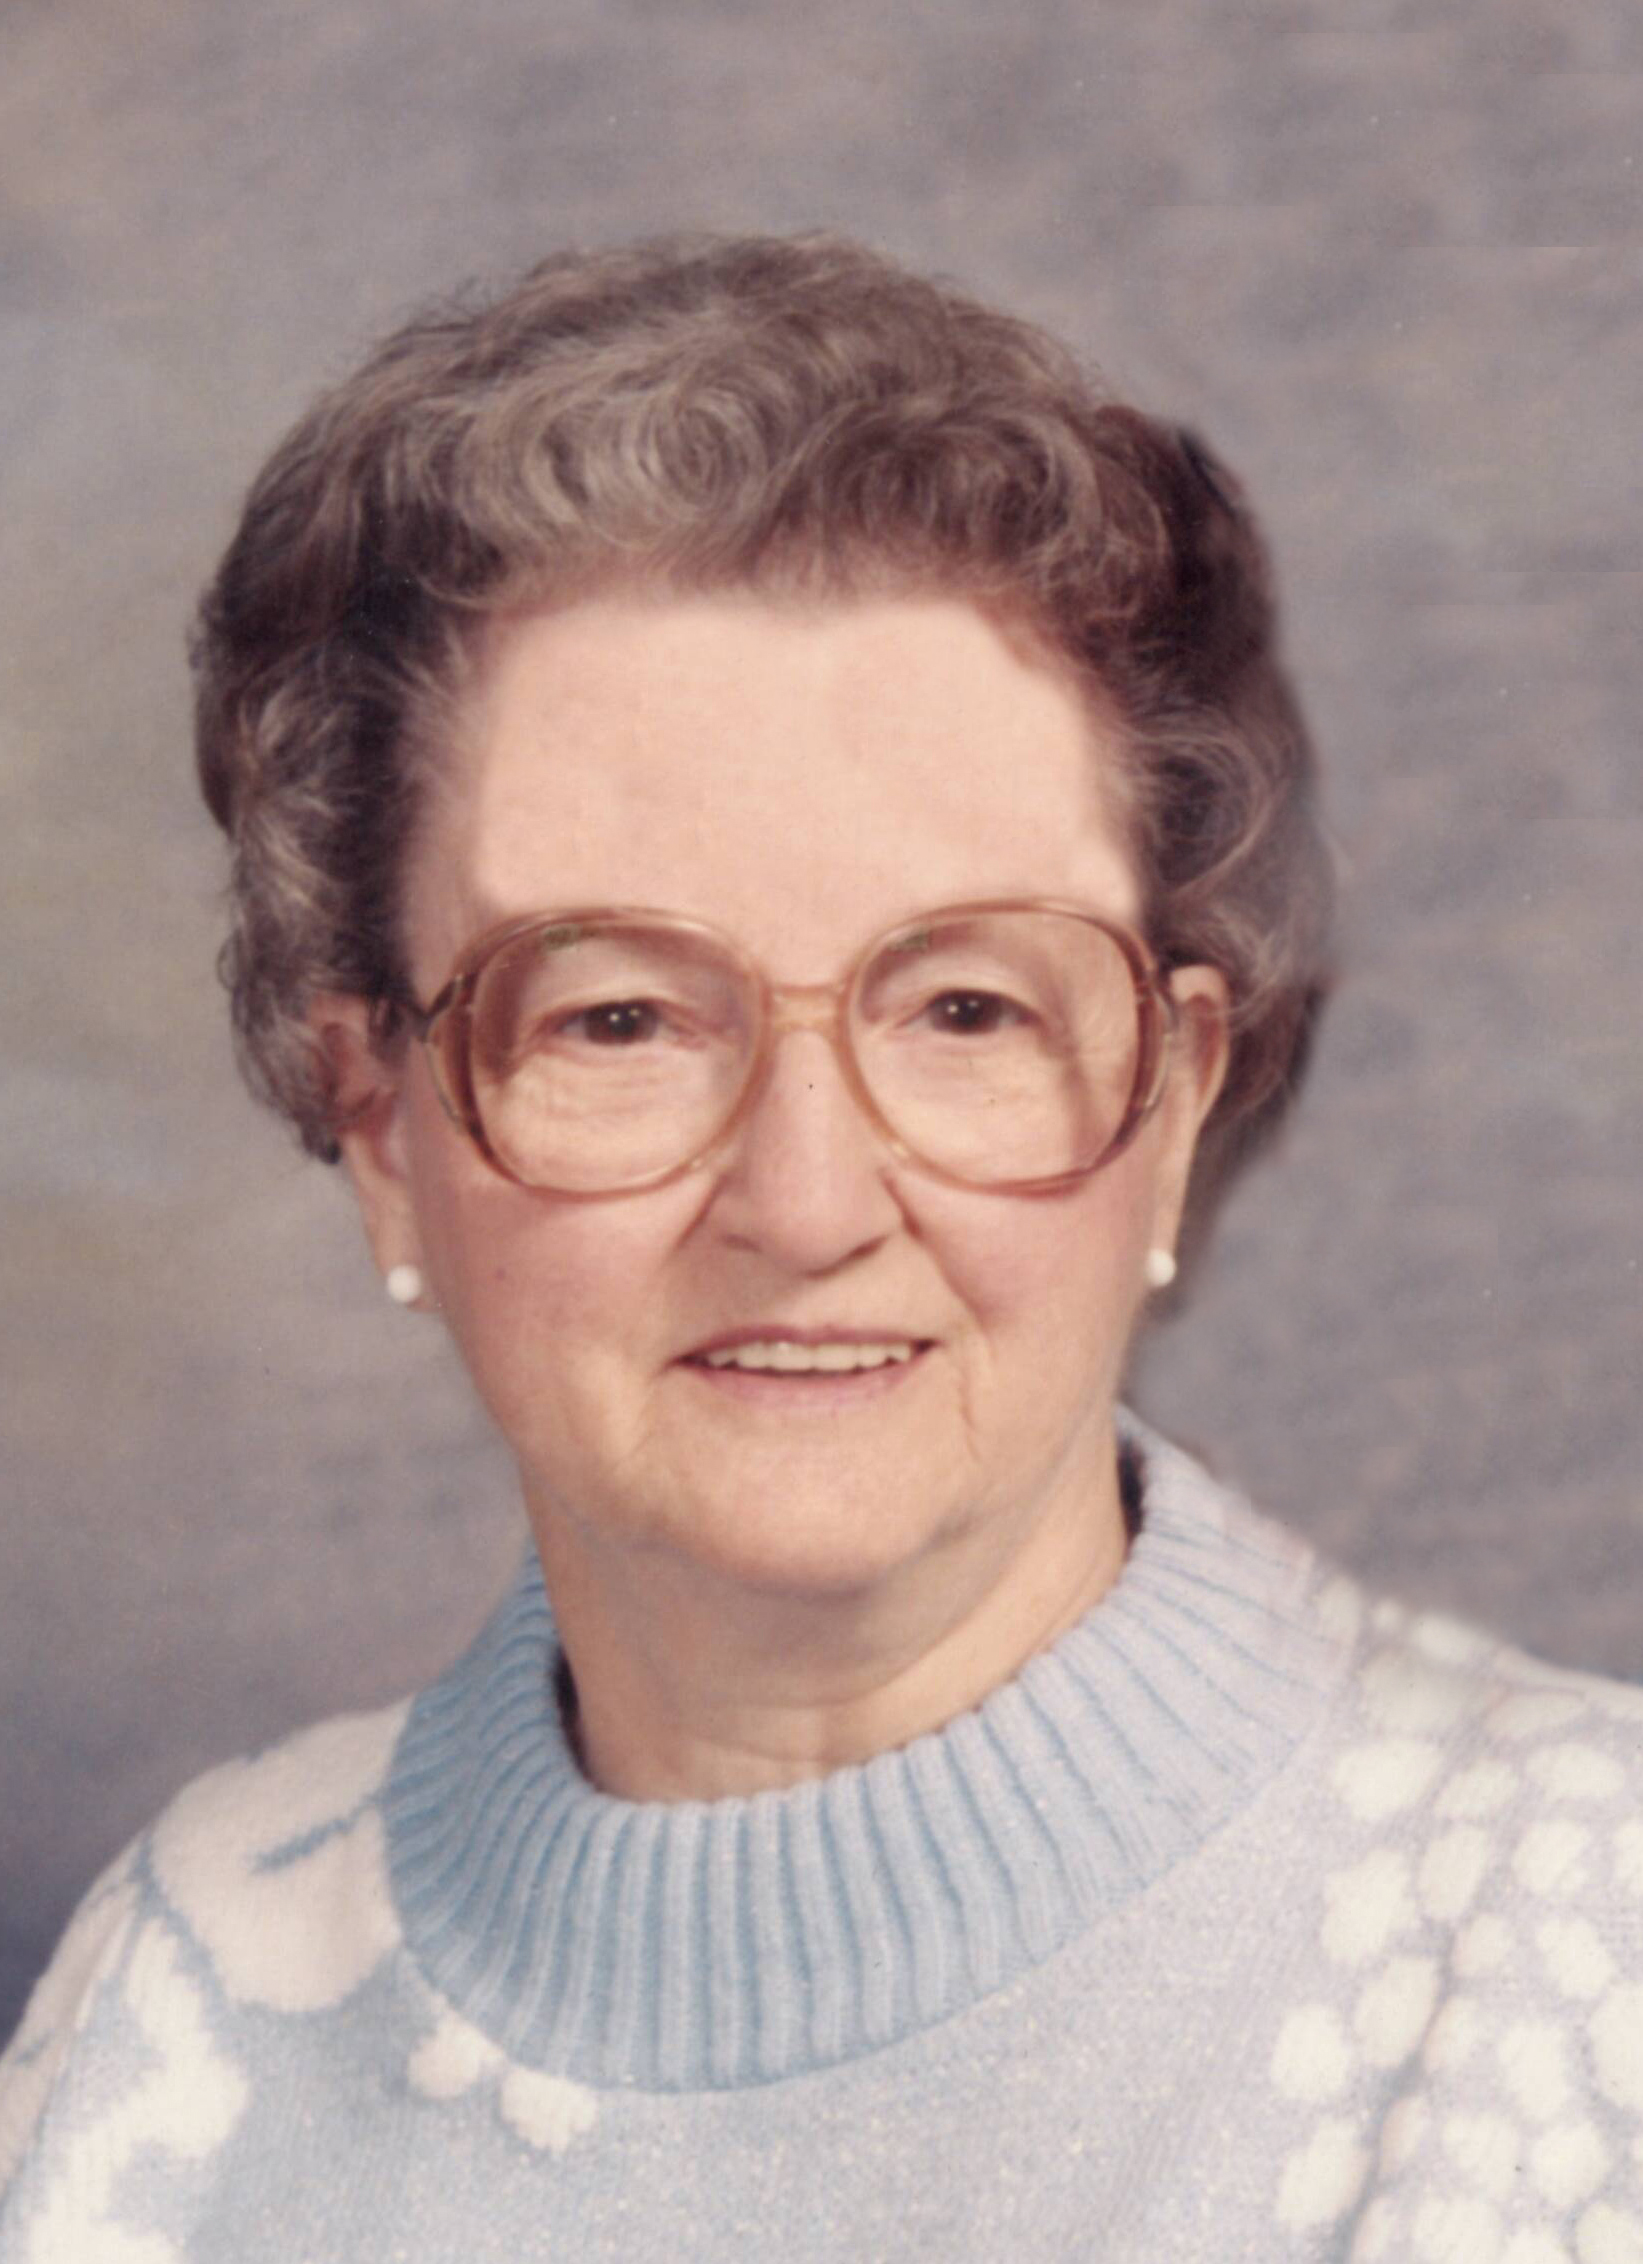 Alda E. Blincow, 96 years of age, of Oxford